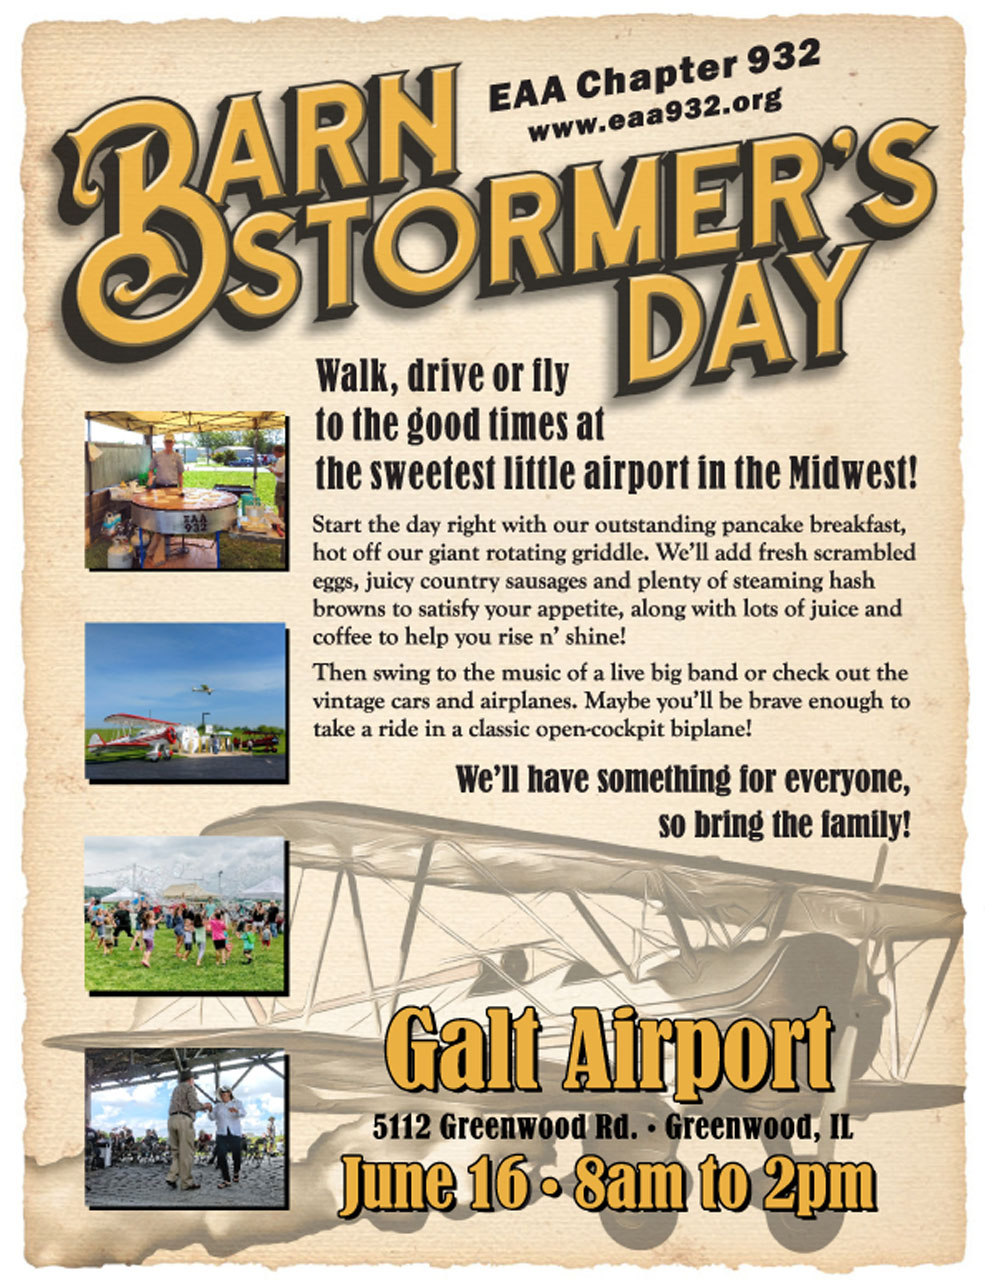 Galt Traffic Online: April 2018 - EAA 932